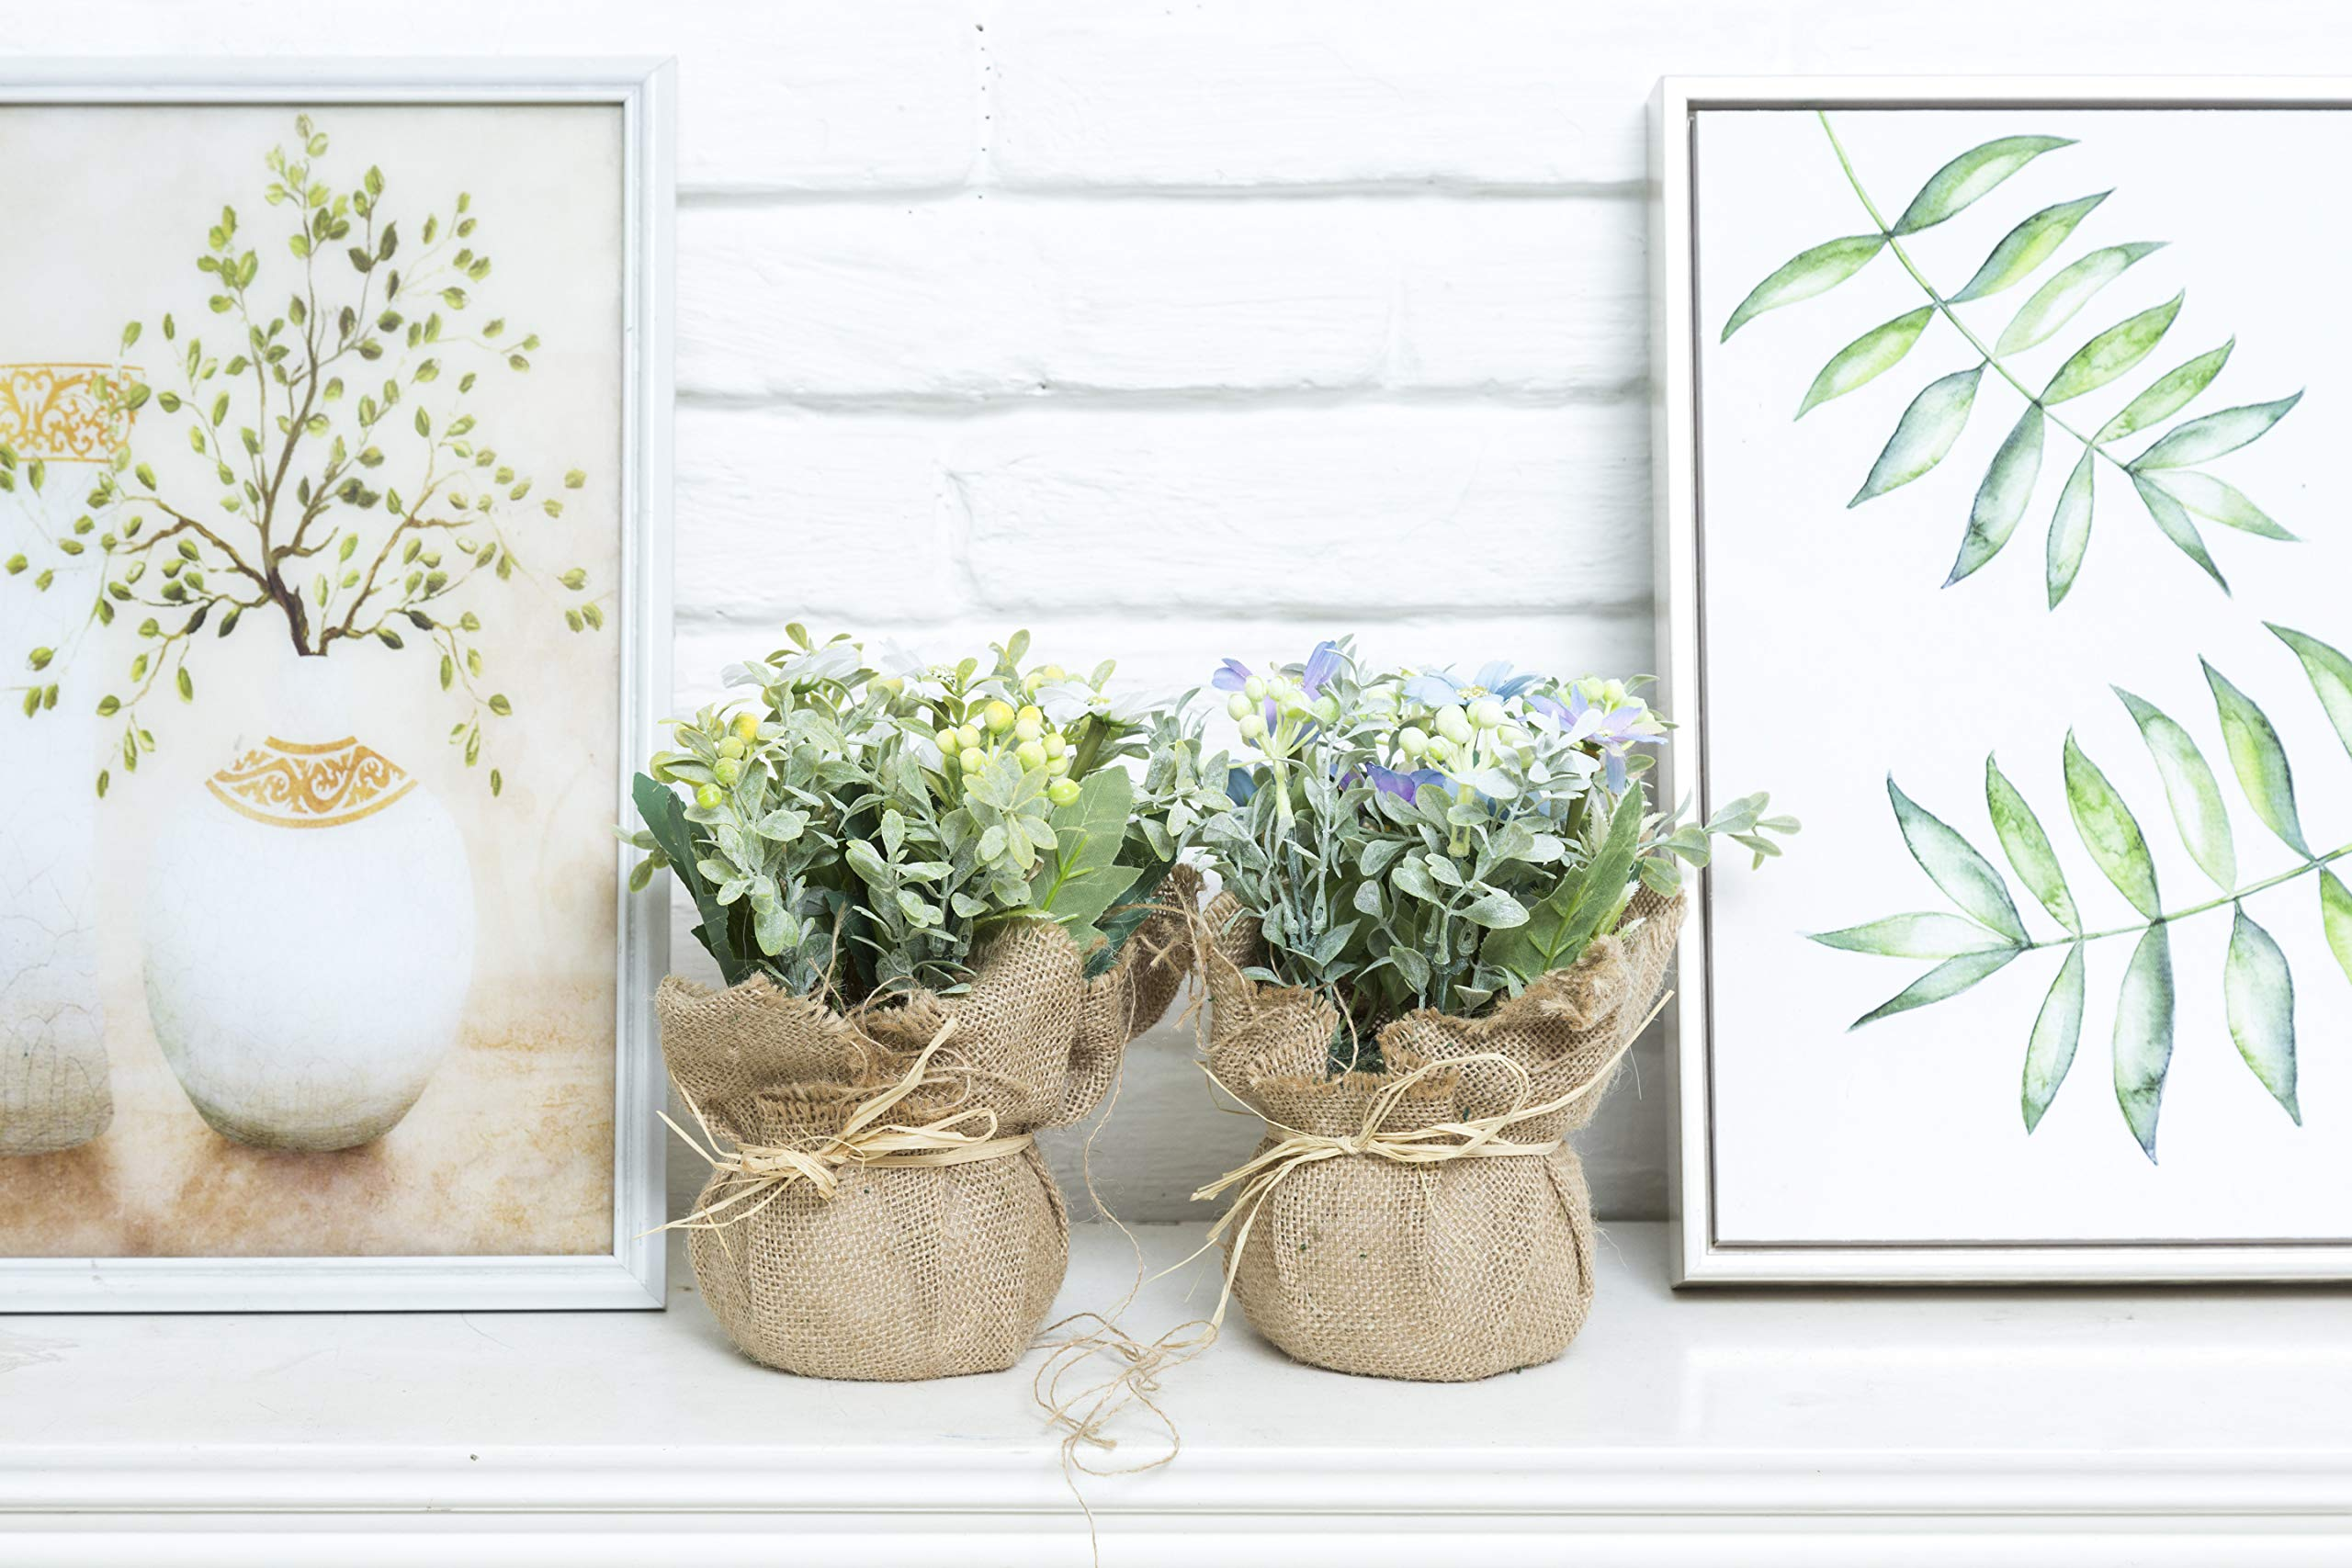 LODESTAR-Artificial-Flower-in-Beautiful-Pot-Mini-Fake-Floral-Bouquet-Indoor-Outdoor-Home-Office-Wedding-Decoration